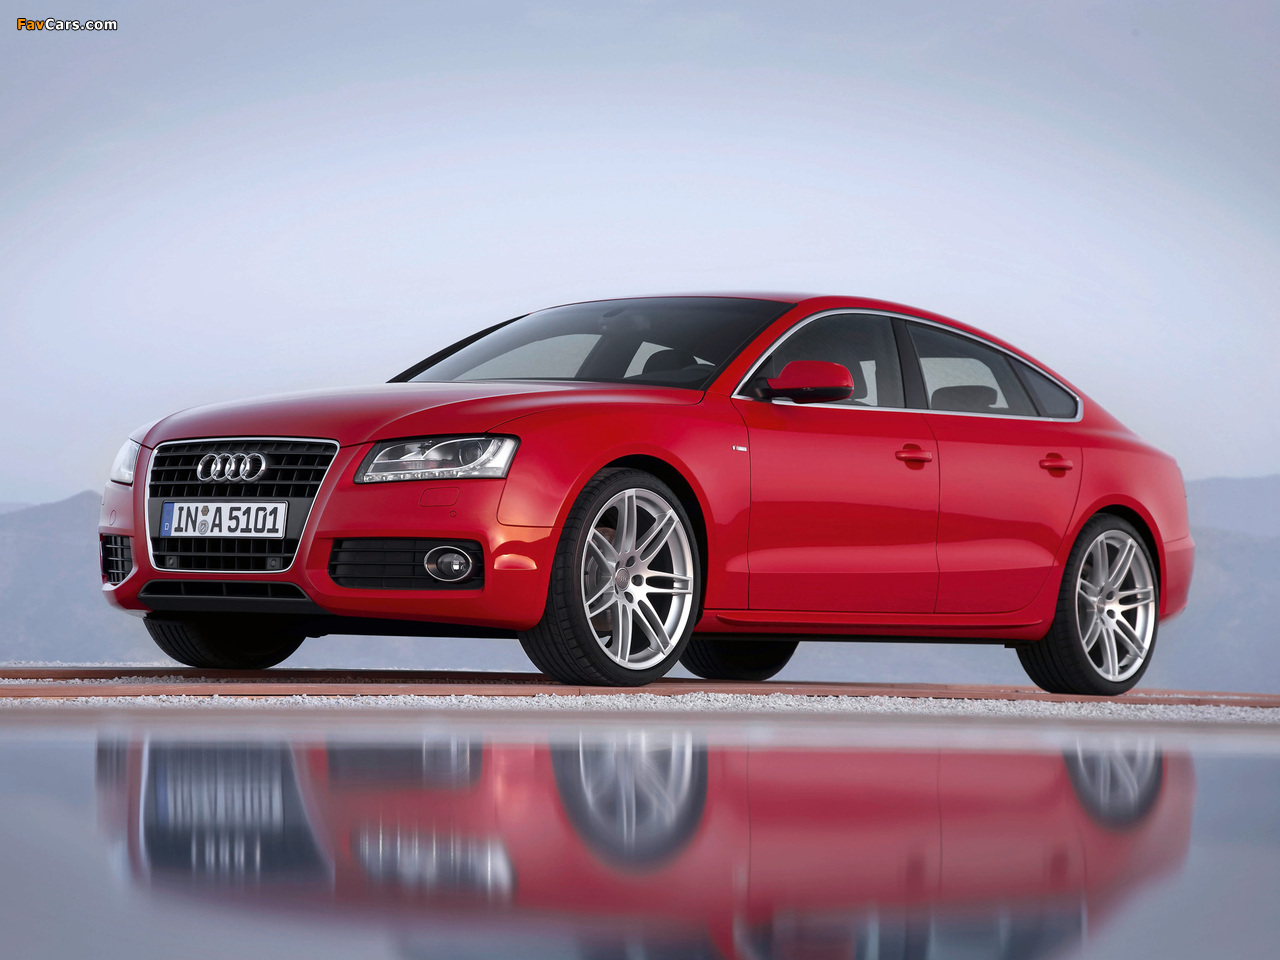 Audi A5 Sportback 2 0t S Line 2009 11 Wallpapers 1280x960